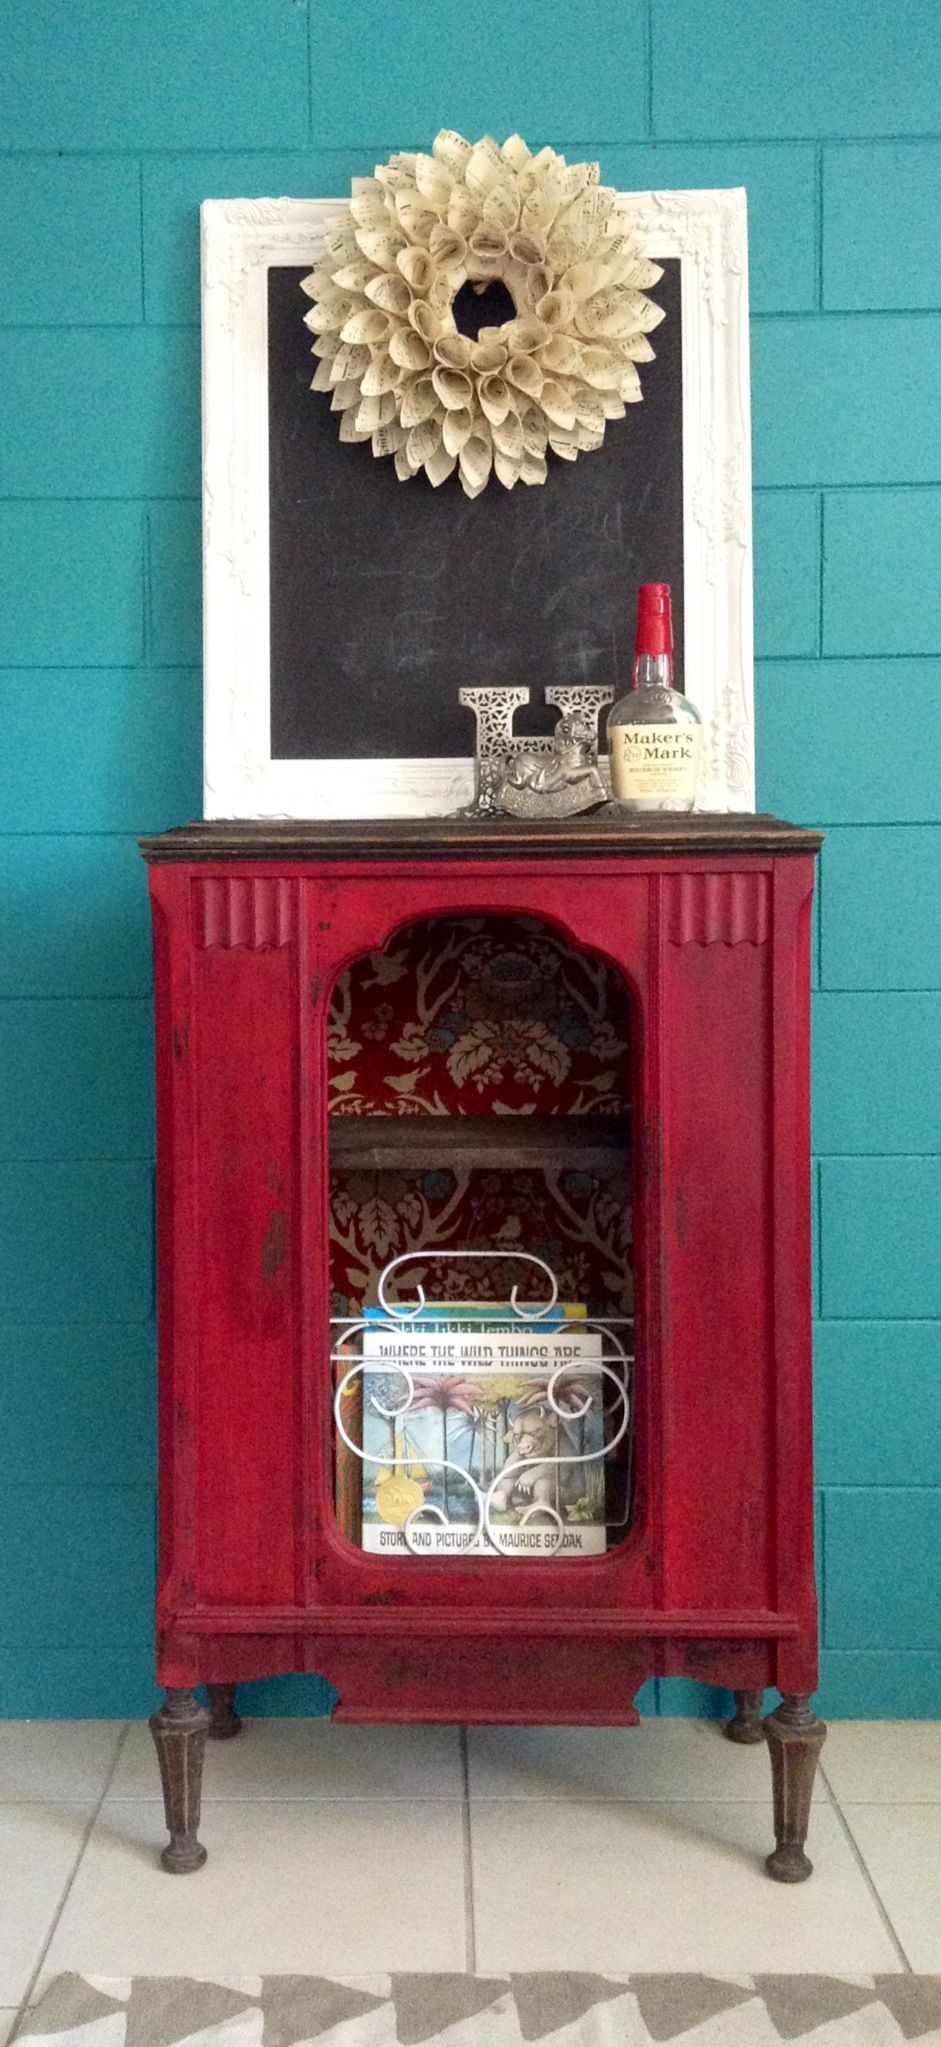 Lackirer Maler Reworked Radio Cabinet Milk Paint Furniture Decoupage Interior